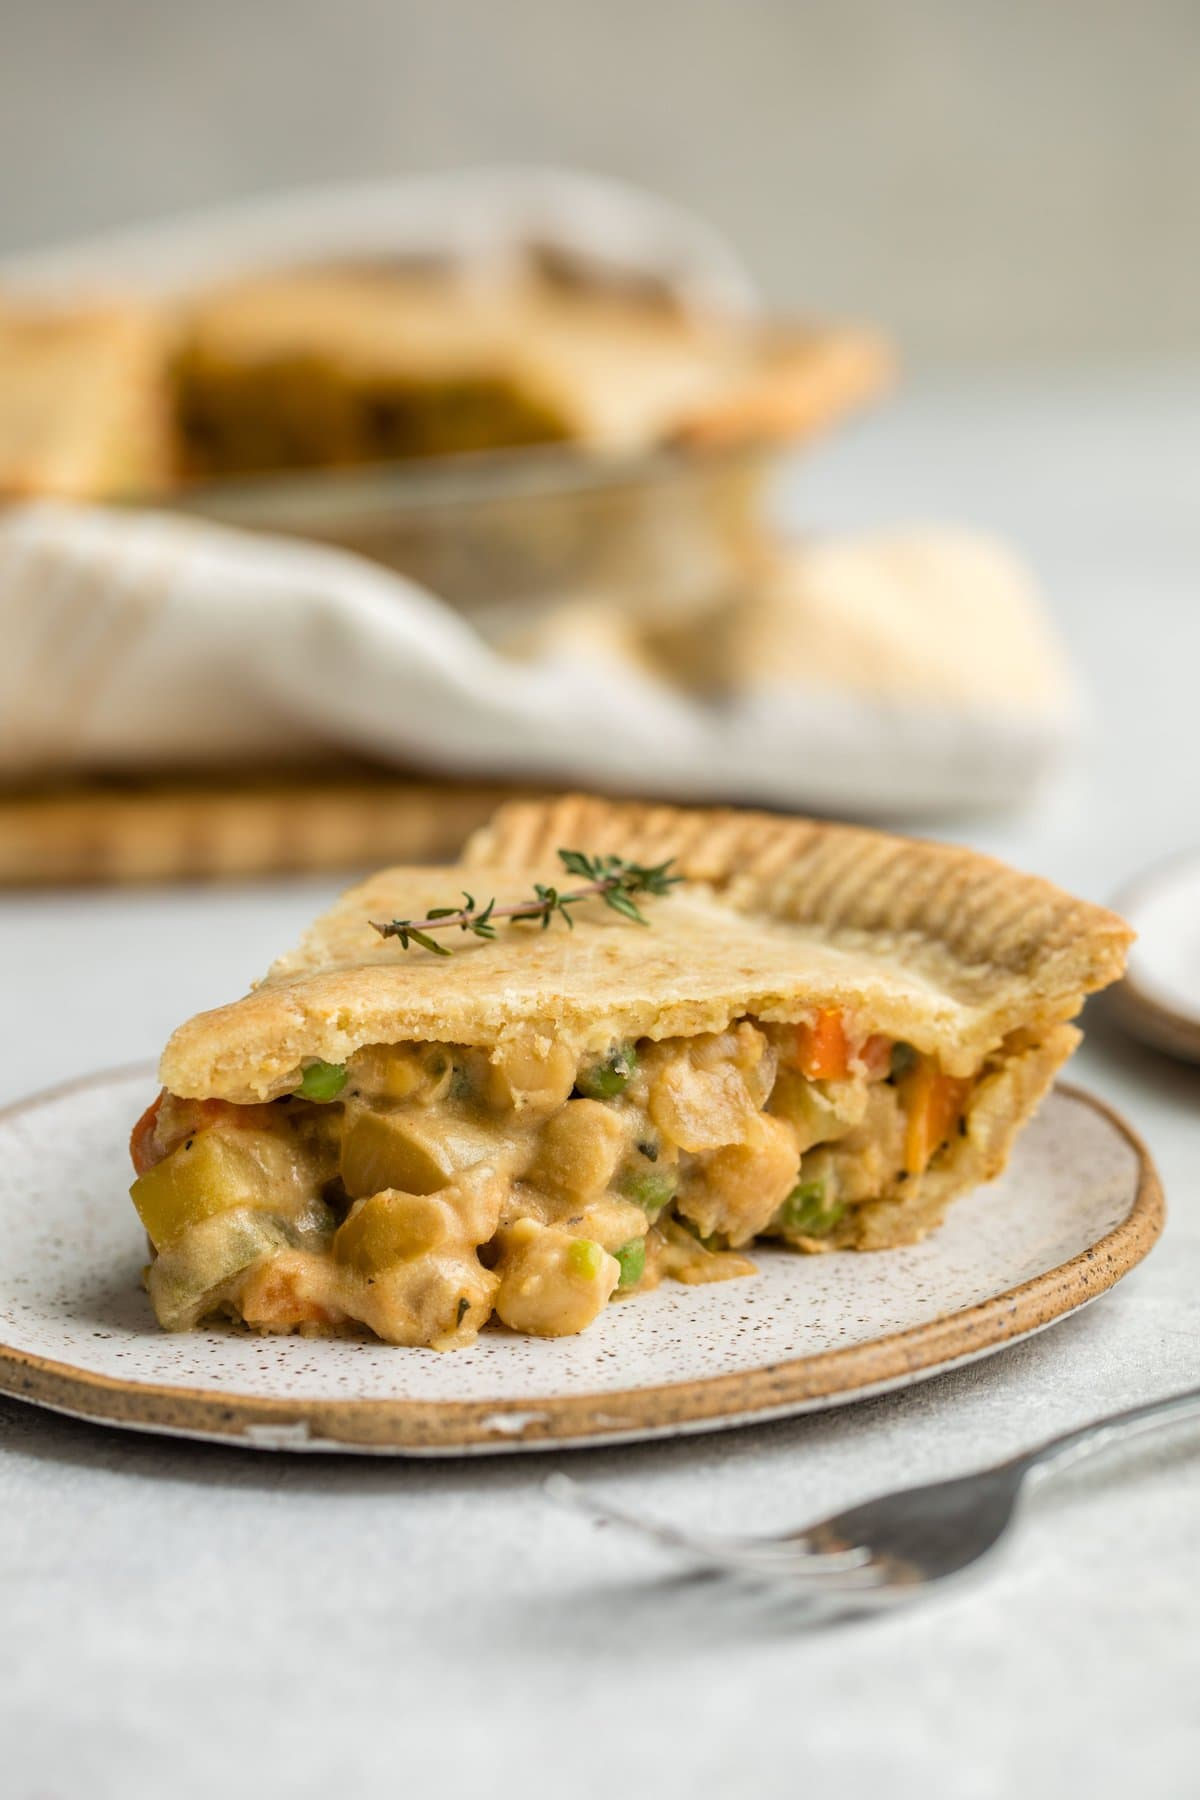 side view of slice of chickpea pot pie filled with chickpeas, peas and carrots on white speckled plate with silver fork